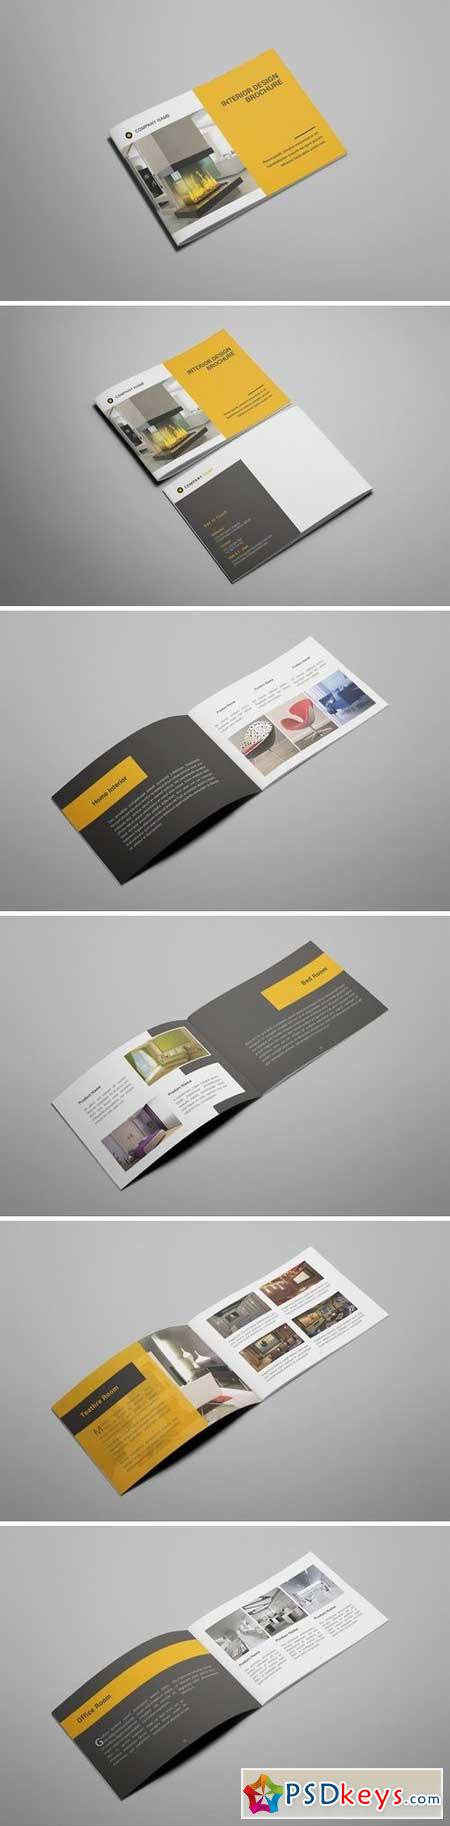 Intersign - Interior Design Brochure 3331099